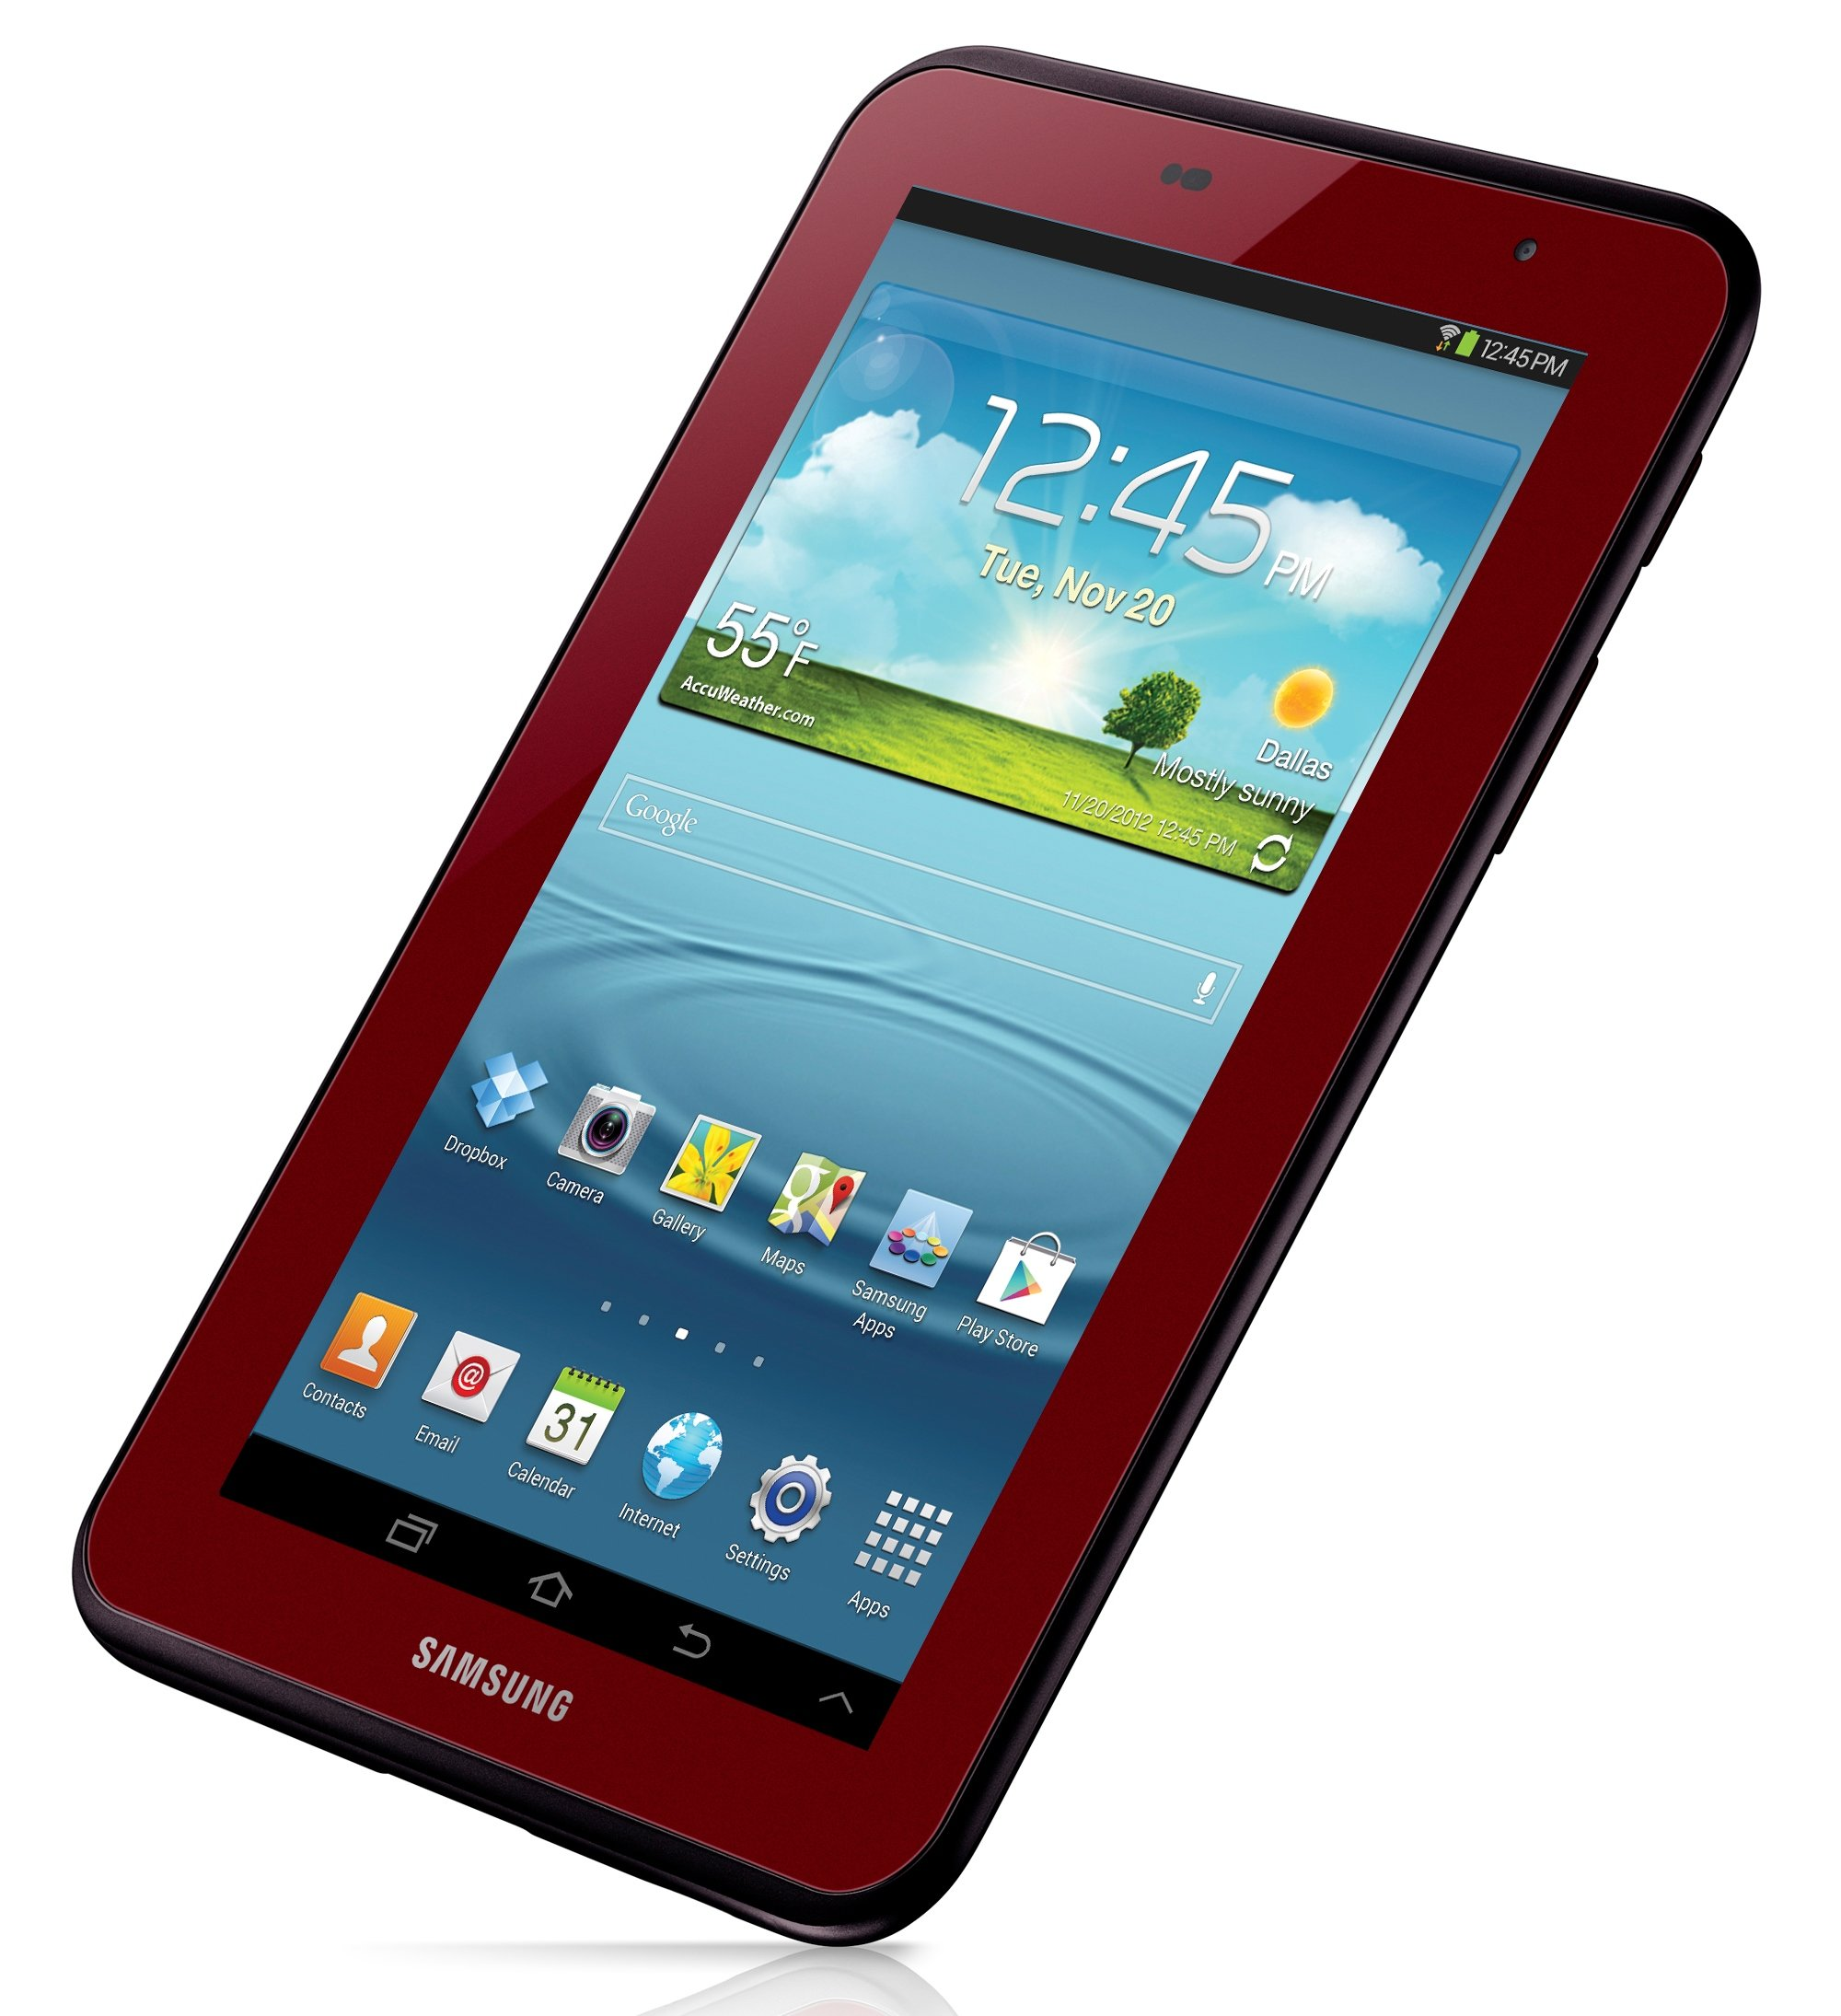 samsung galaxy tab 7 0 in garnet red for valentine 39 s day. Black Bedroom Furniture Sets. Home Design Ideas